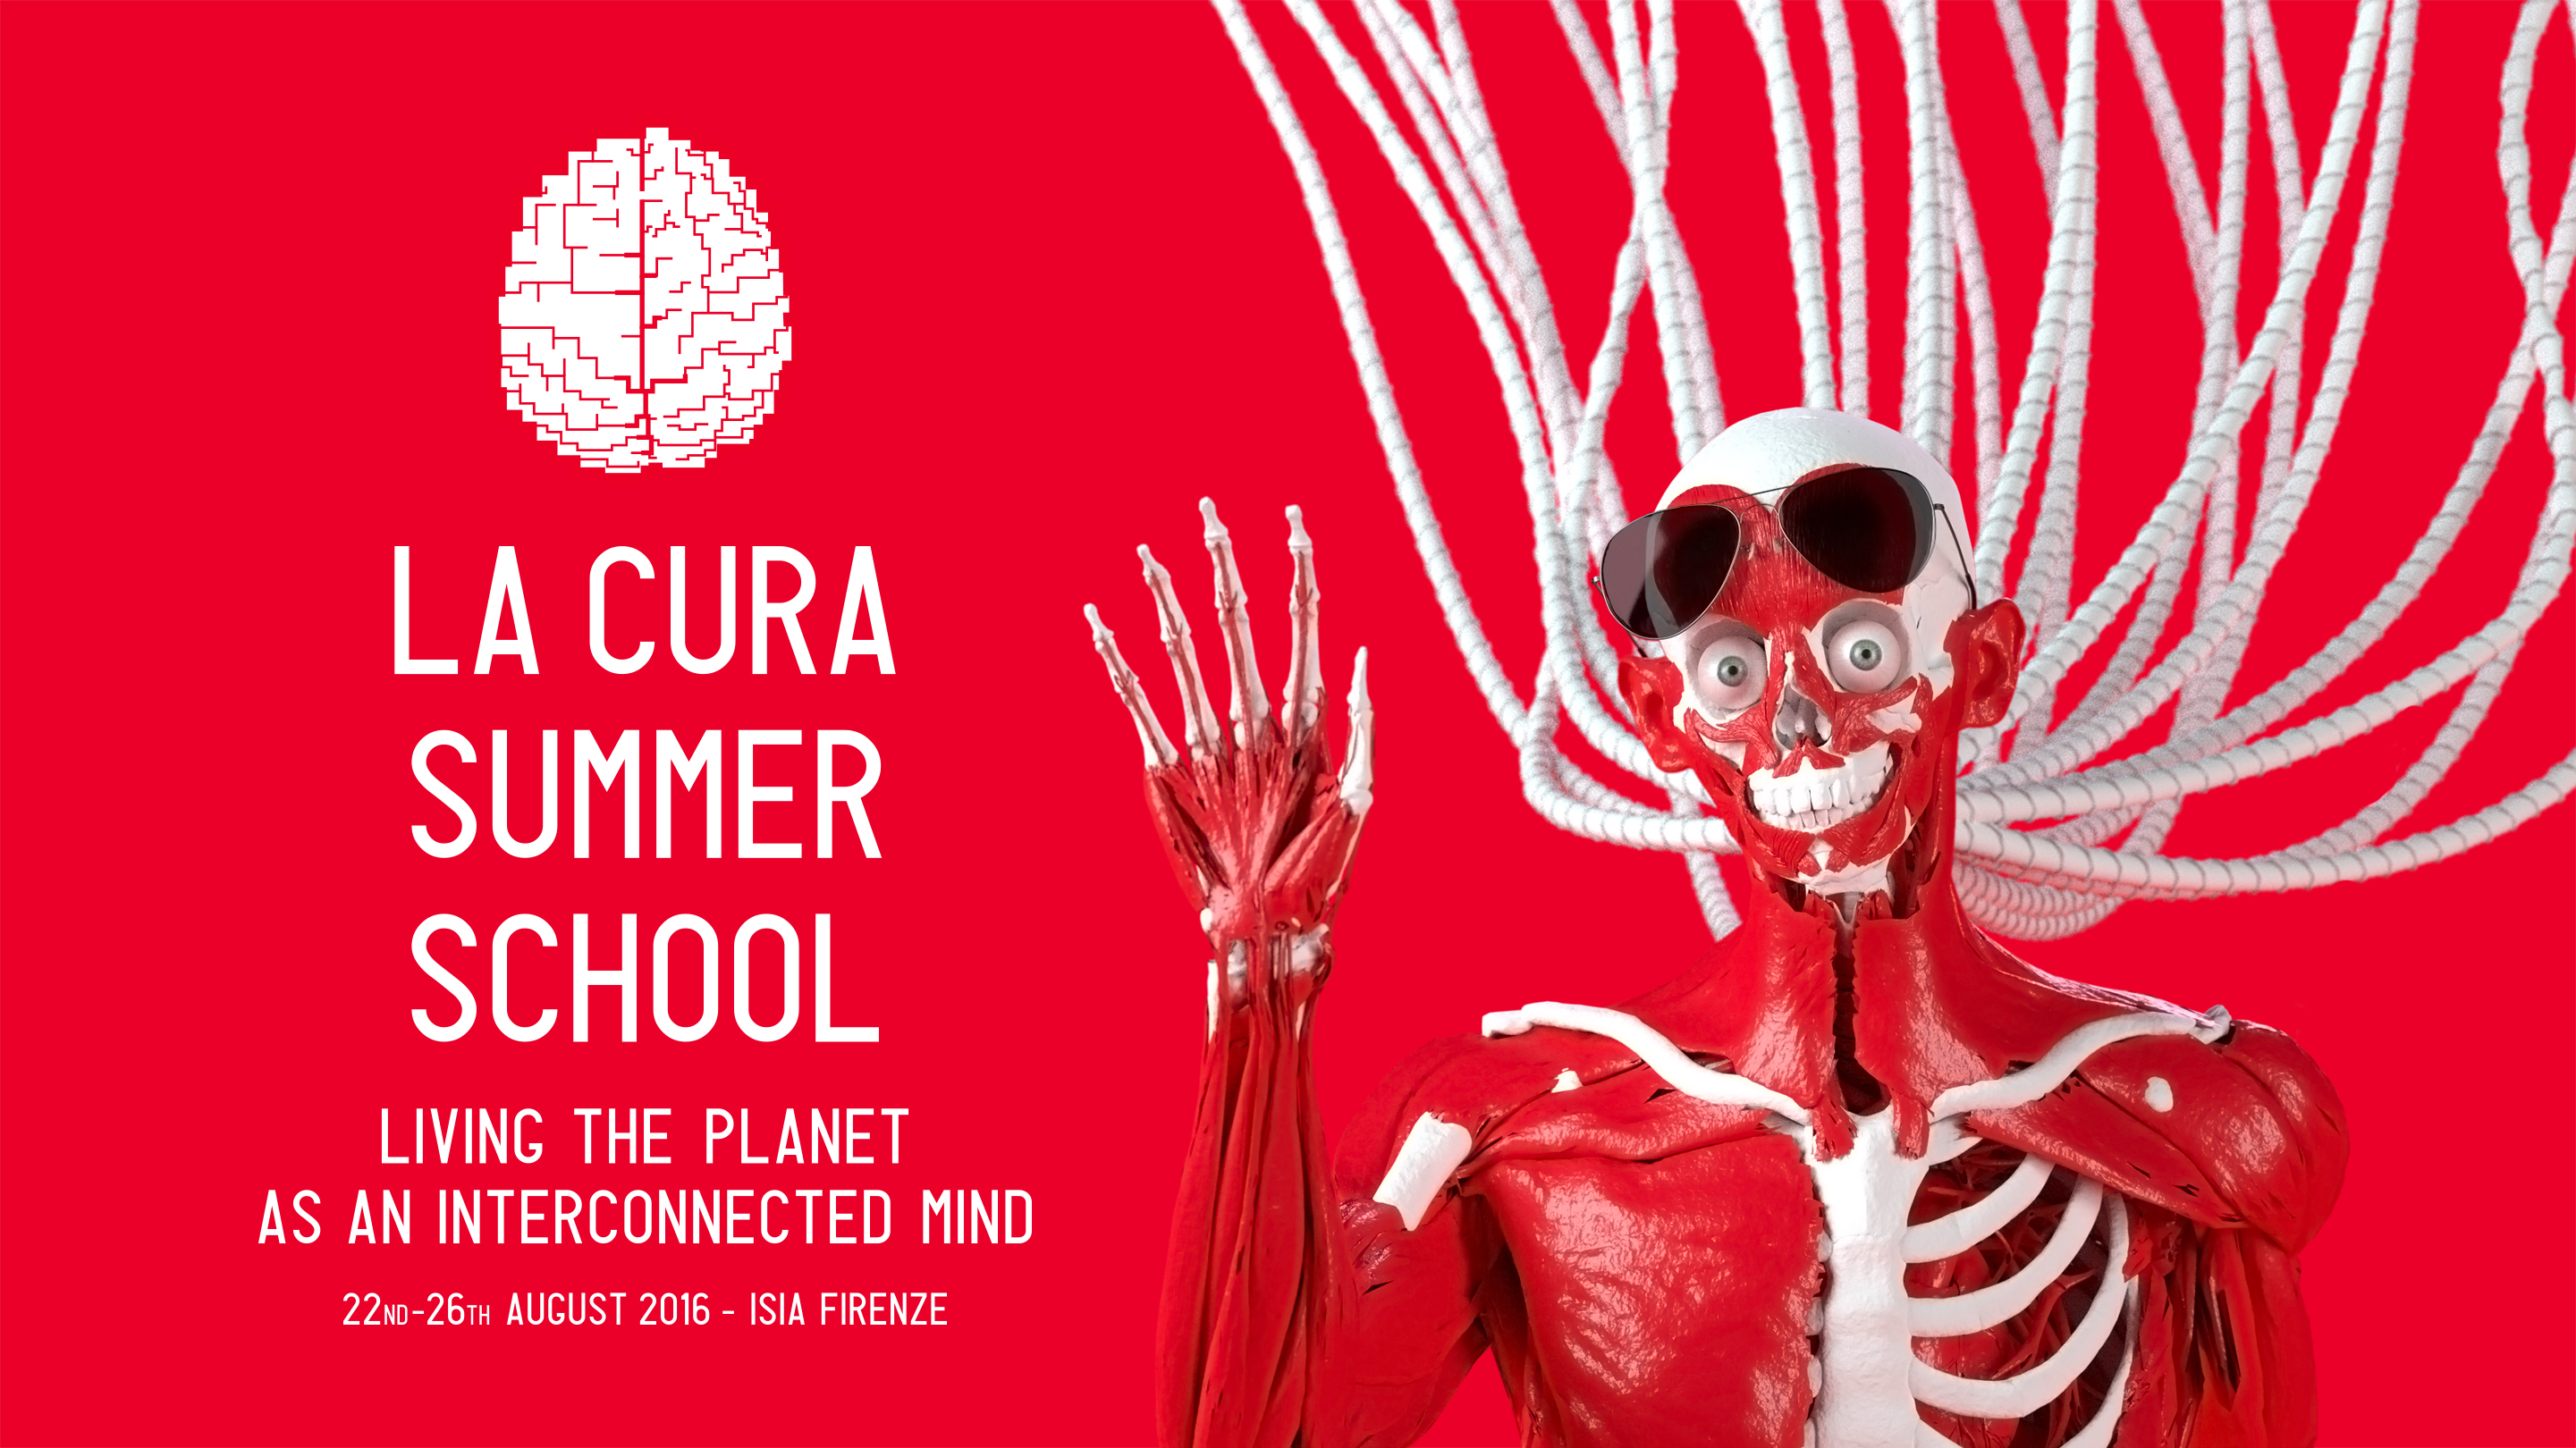 La Cura Summer School 2016